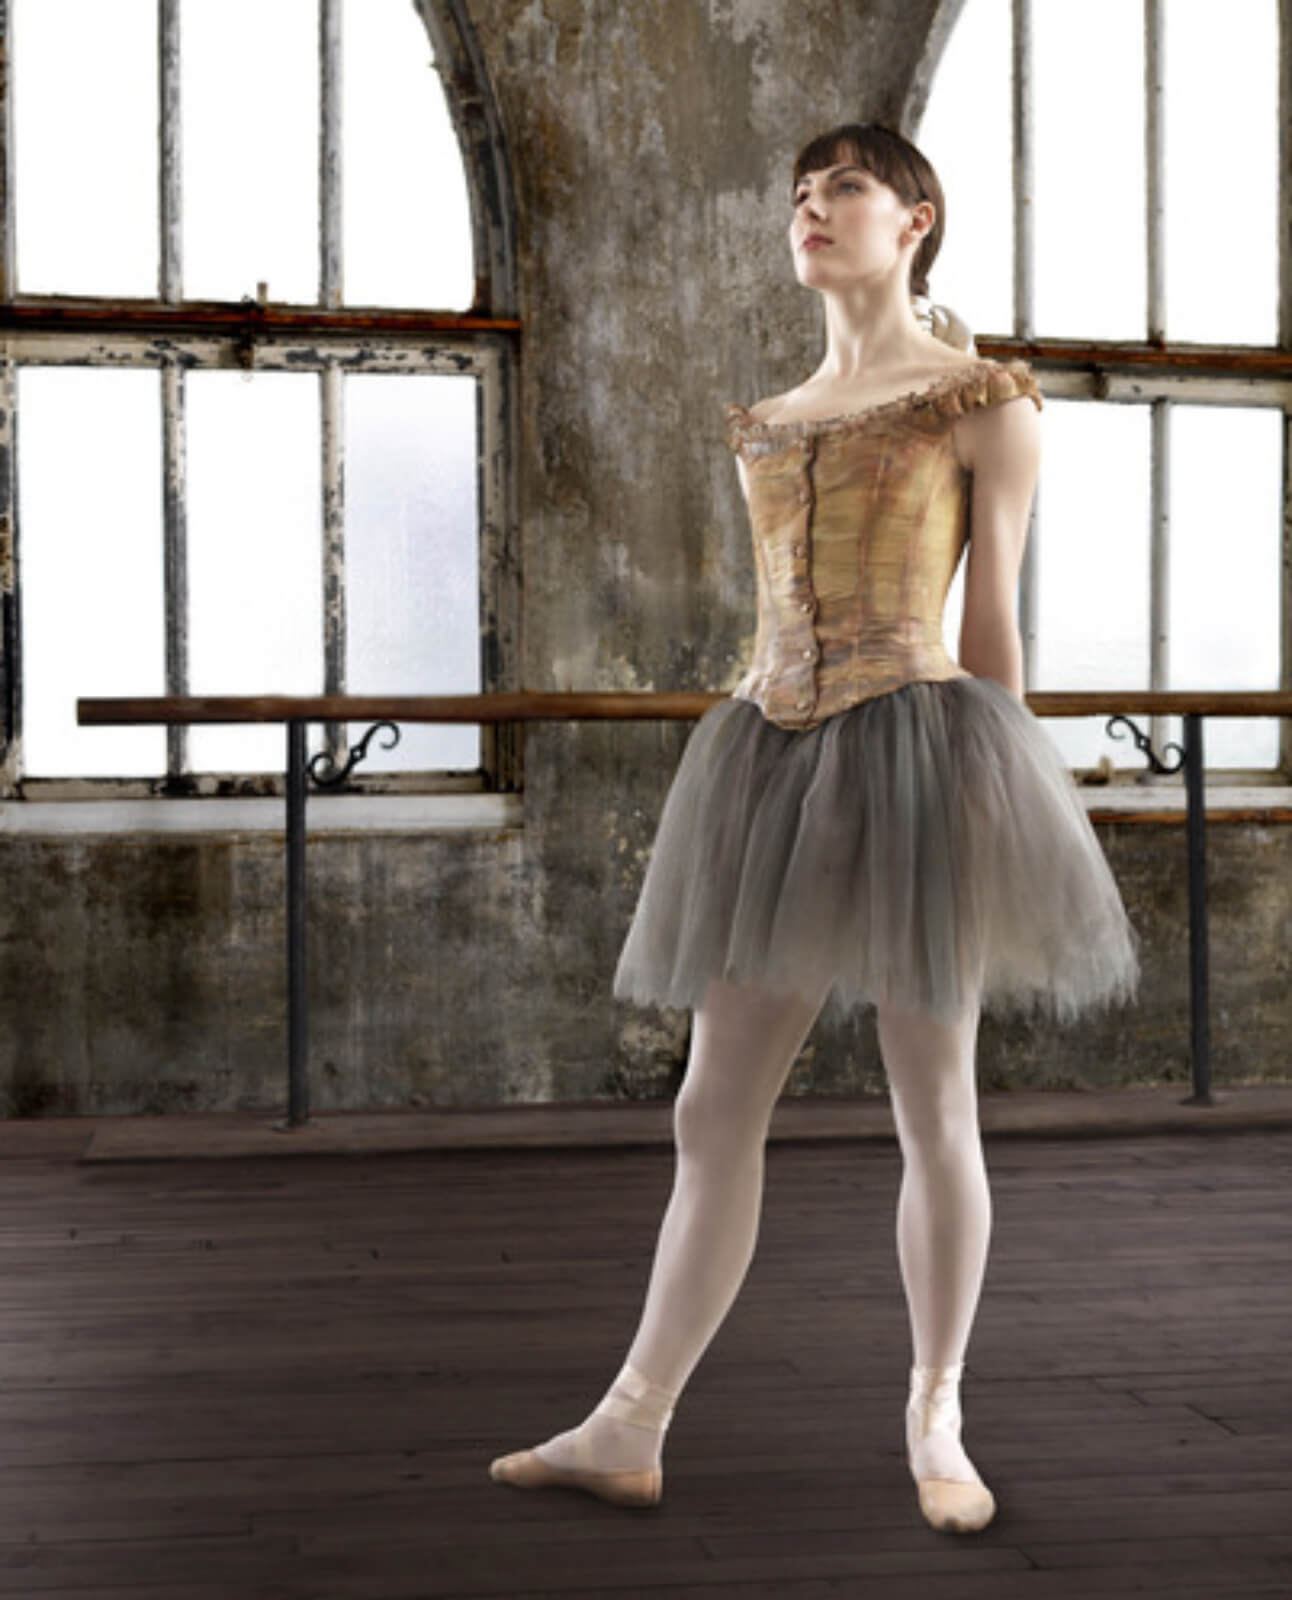 Marie (Tiler Peck) in exact position and costume replicating the famous Degas Sculpture.